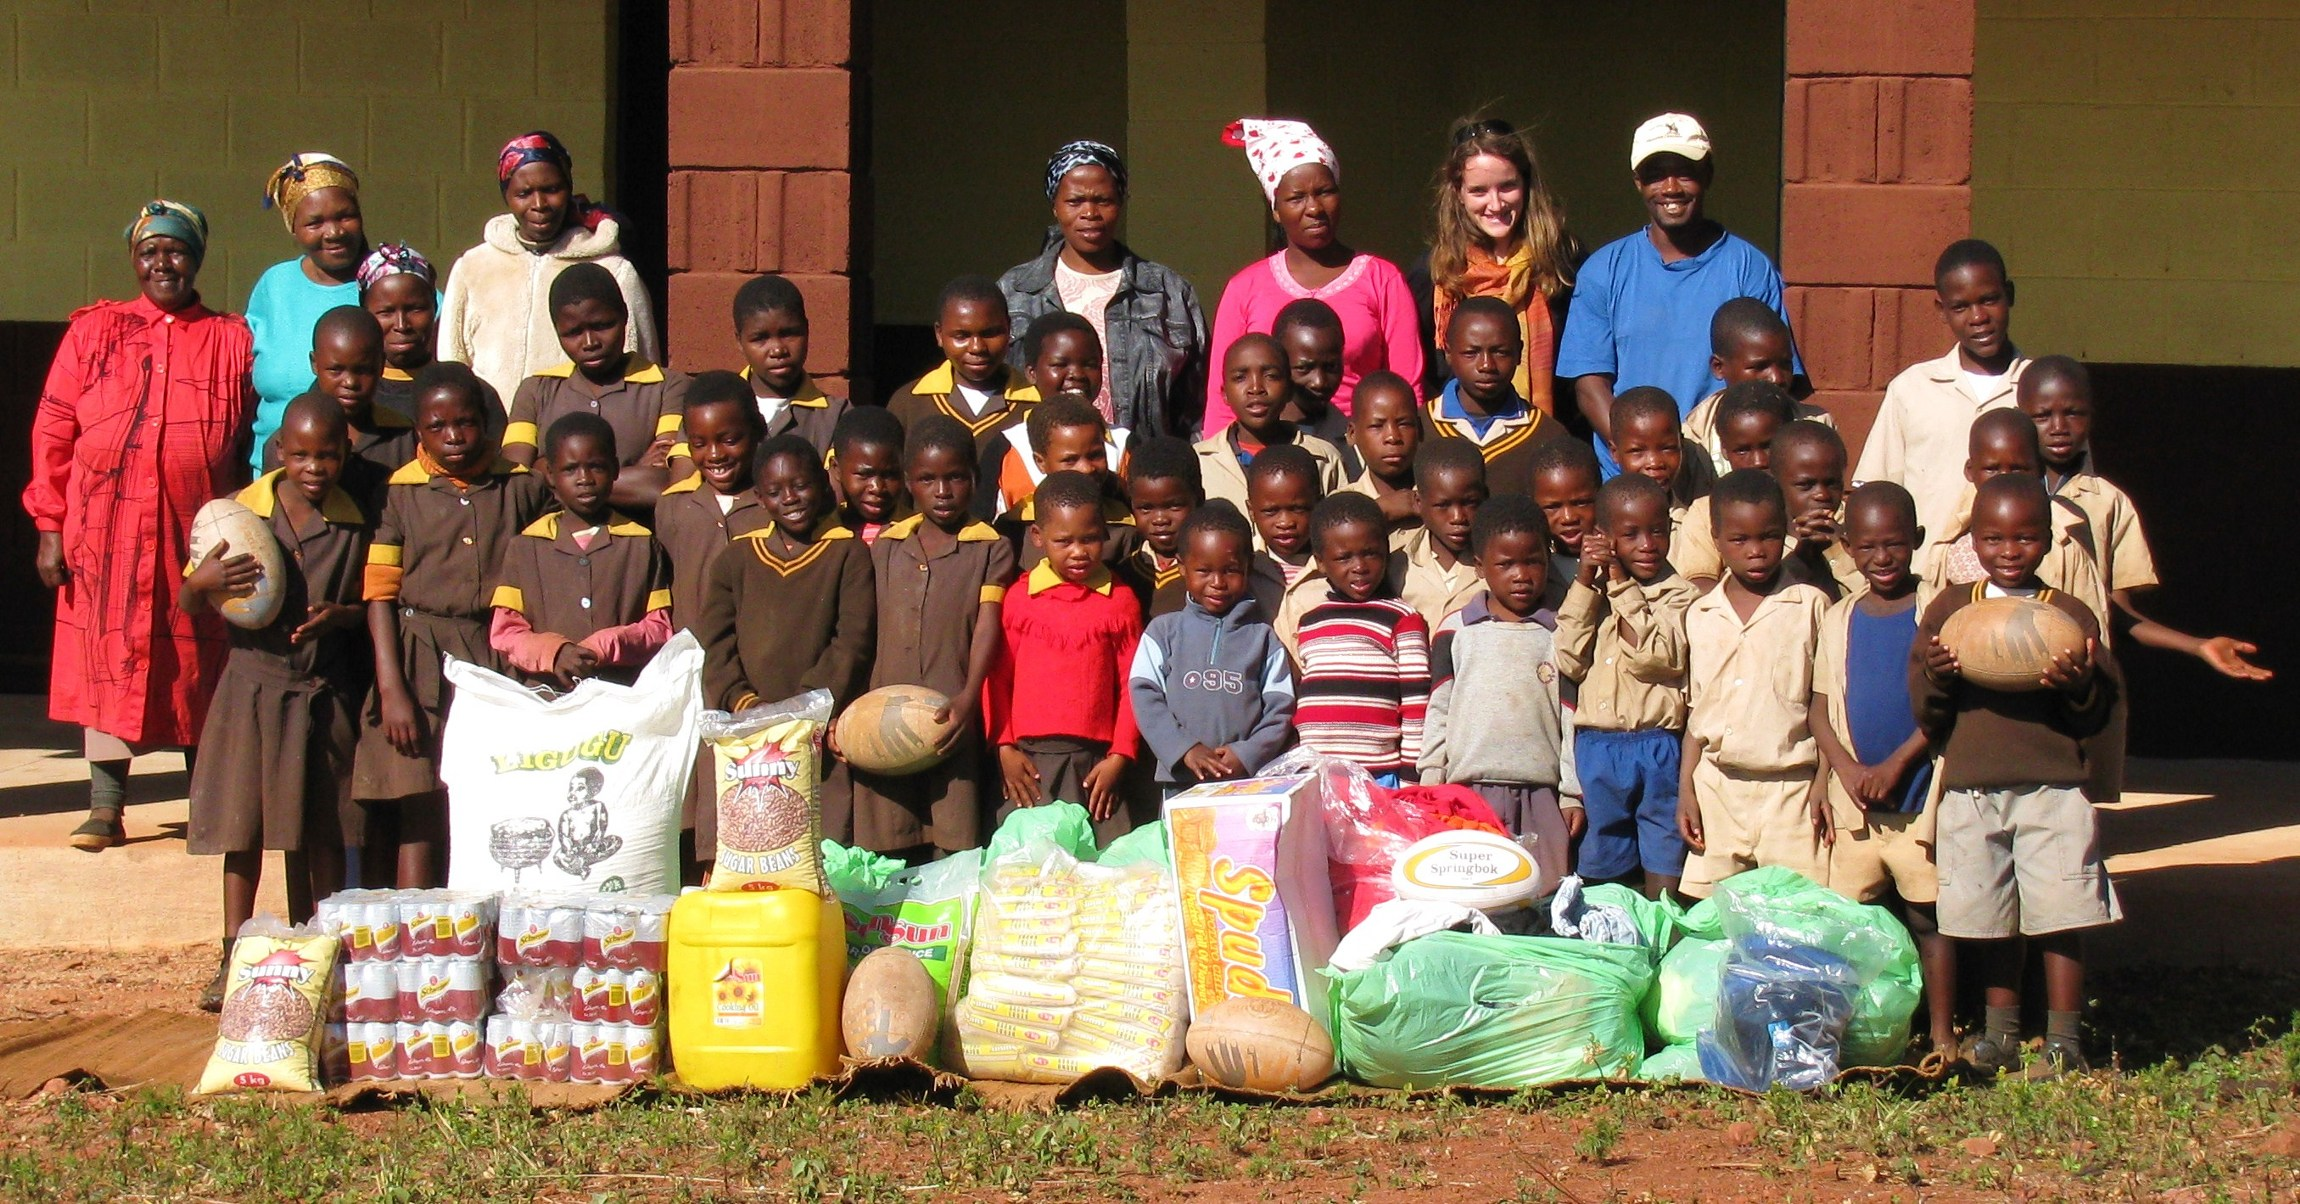 essay on visit to a orphanage